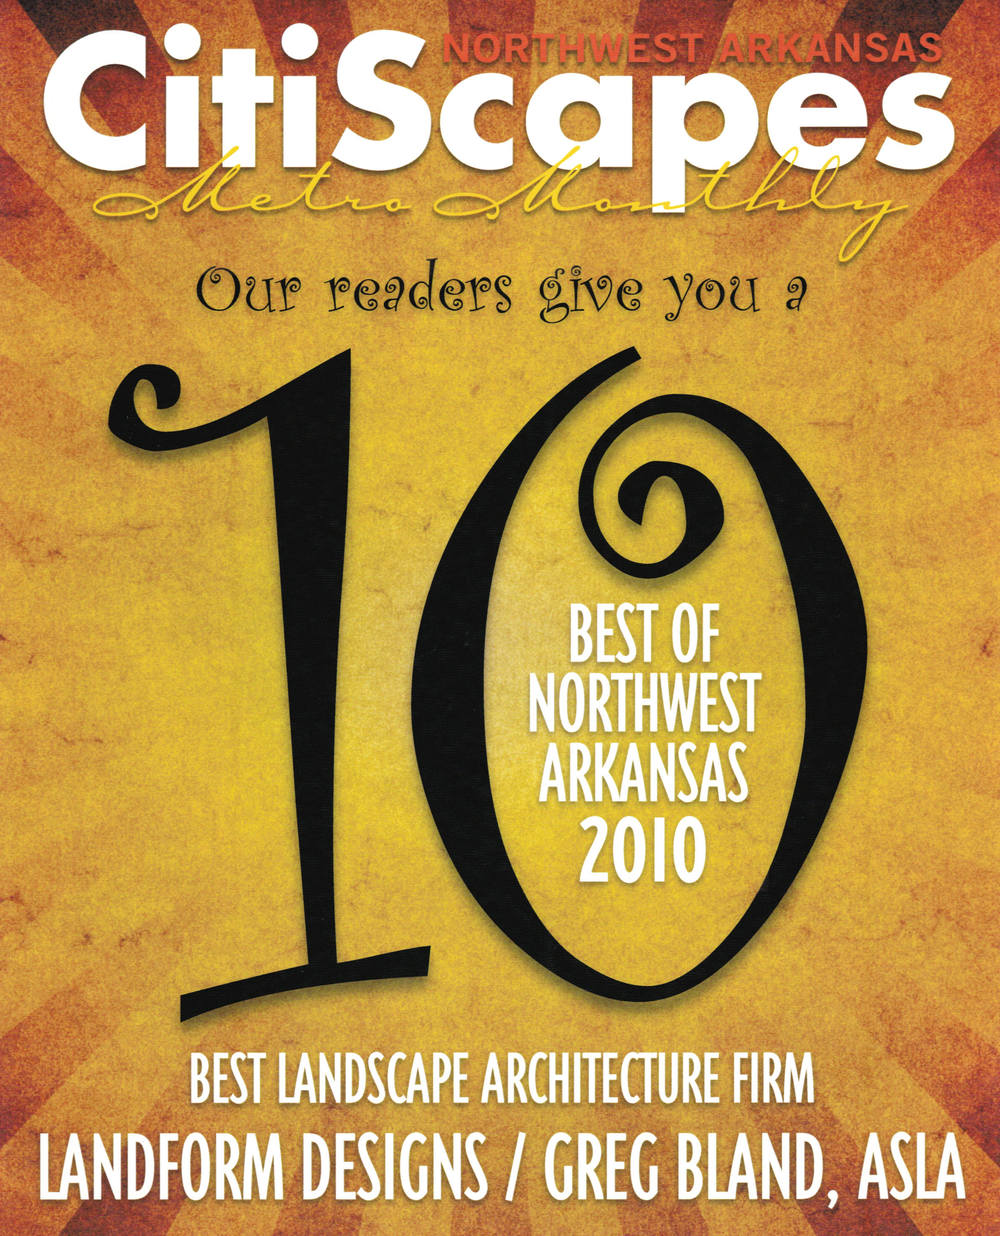 Citiscapes Metro Monthly - Best Landscape Architecture Firm 2010